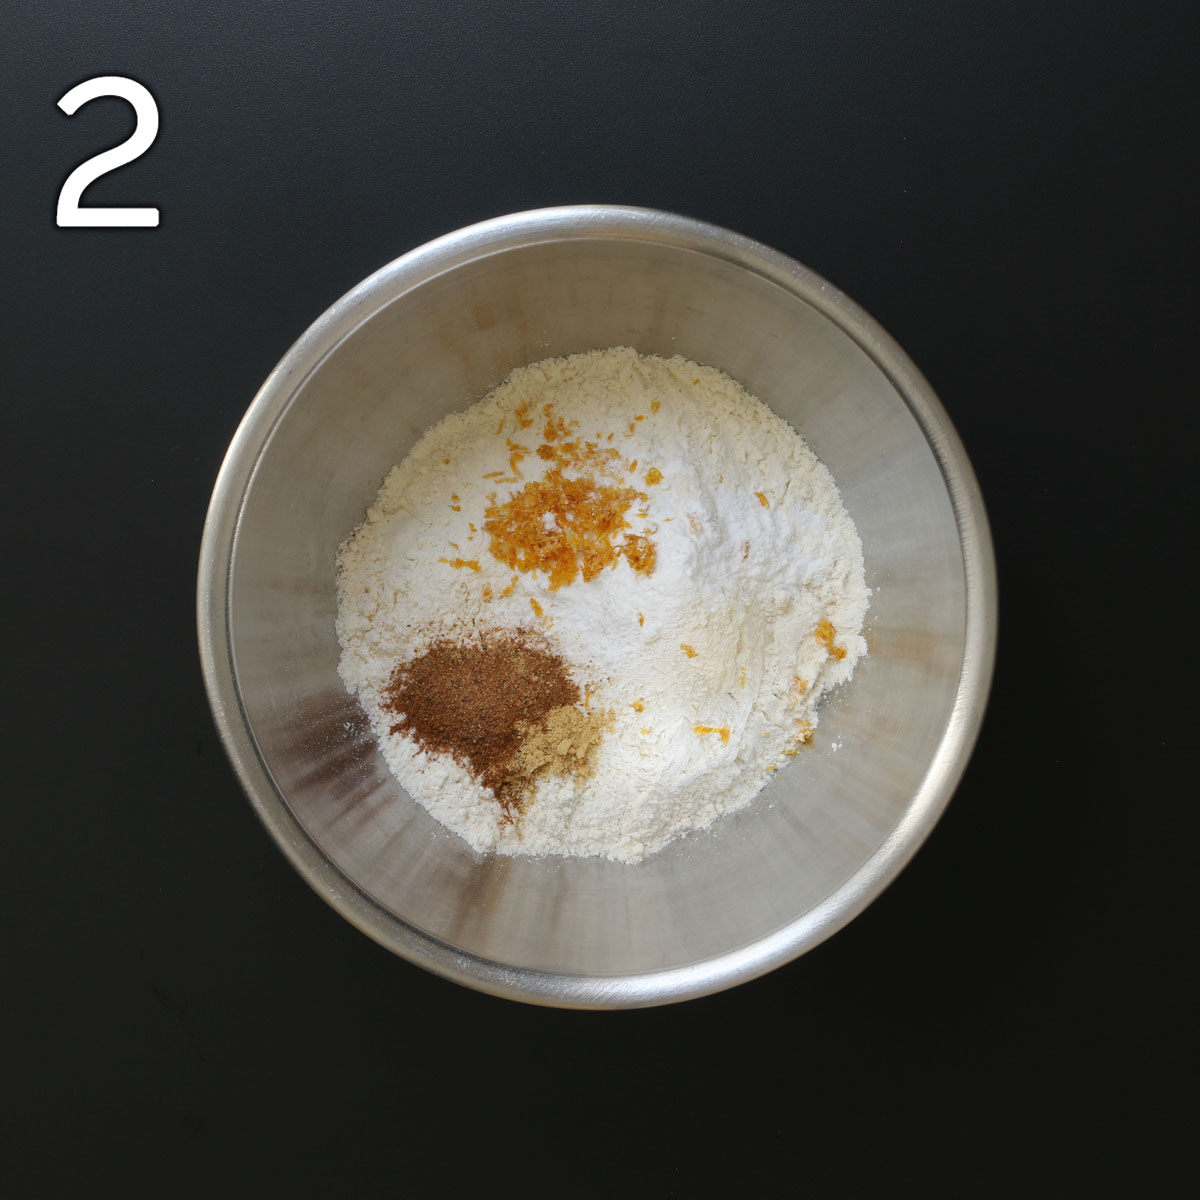 flour, spices, and zest in metal mixing bowl.